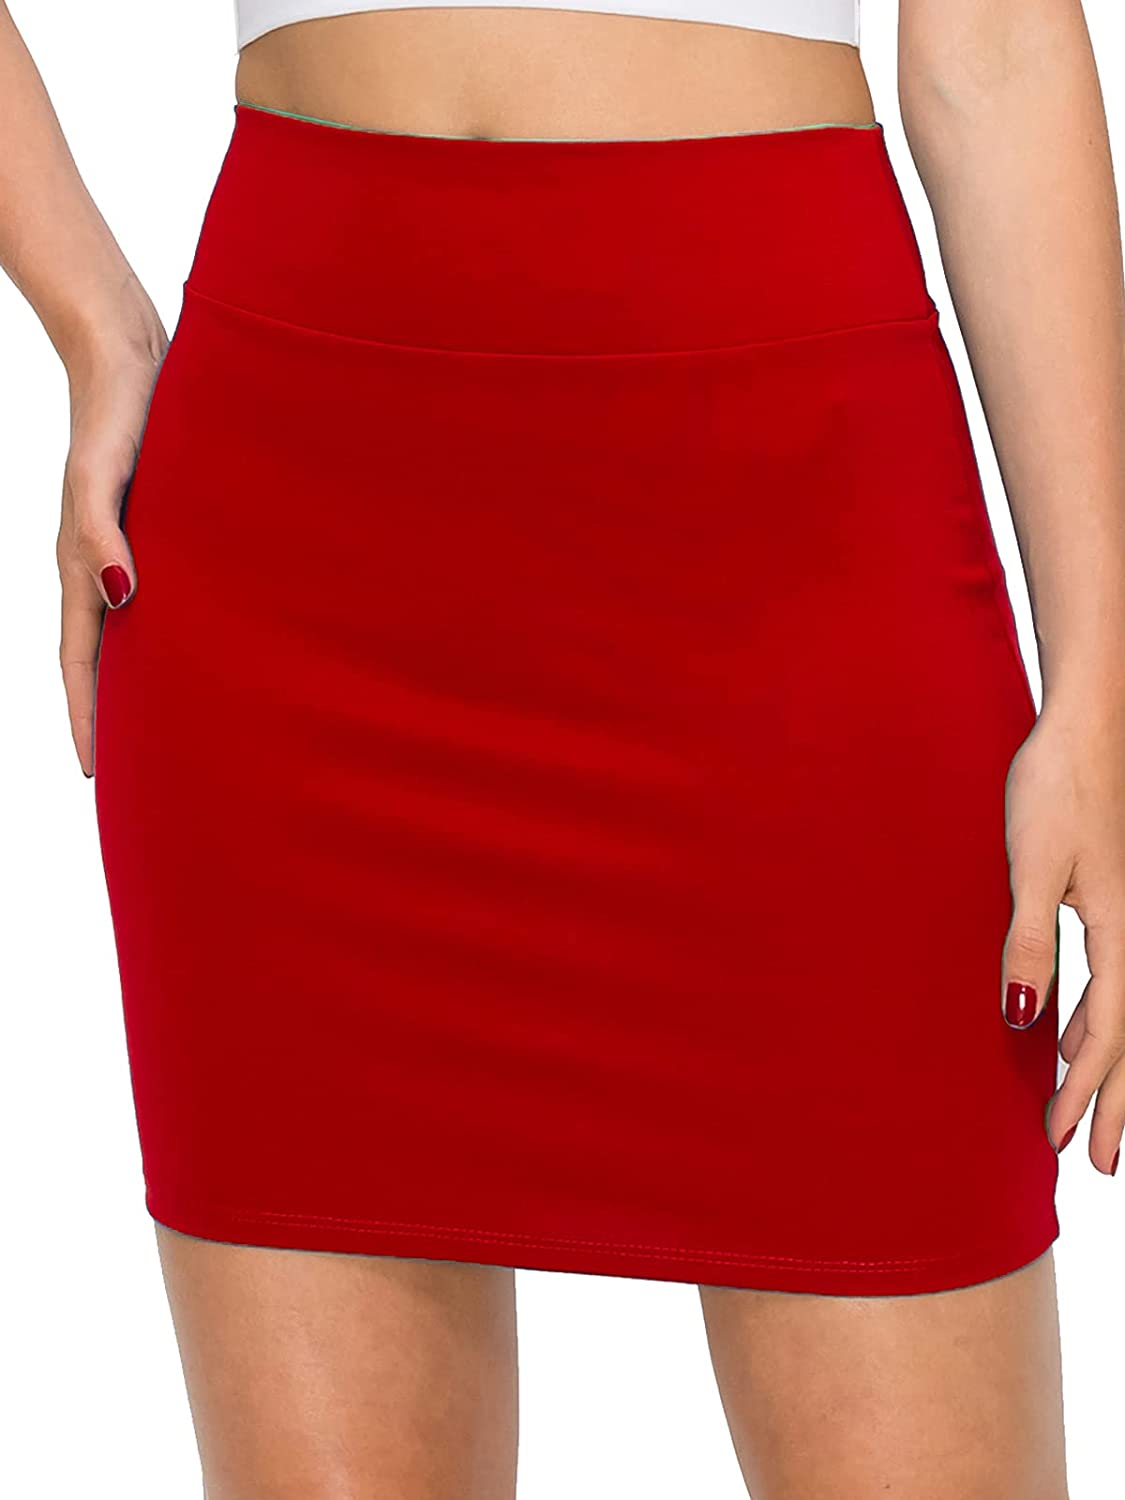 FashionMille Women Basic Bodycon Pencil Comfy Stretchy Hight Waist Mini Skirt Made in USA